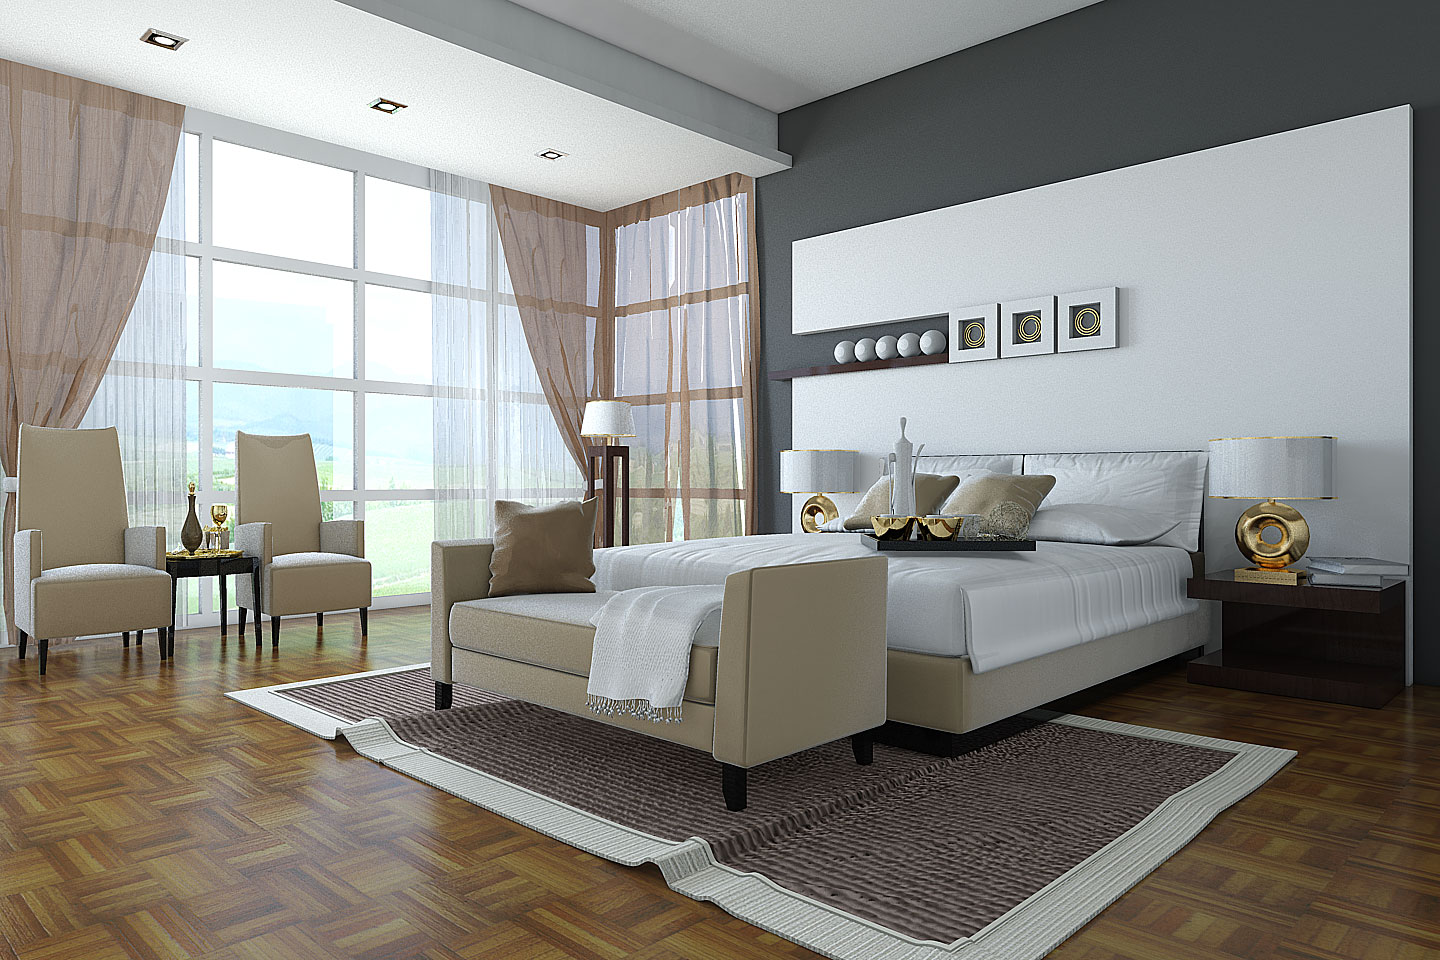 Living Room Designing Room beautiful bedrooms classic bedroom design